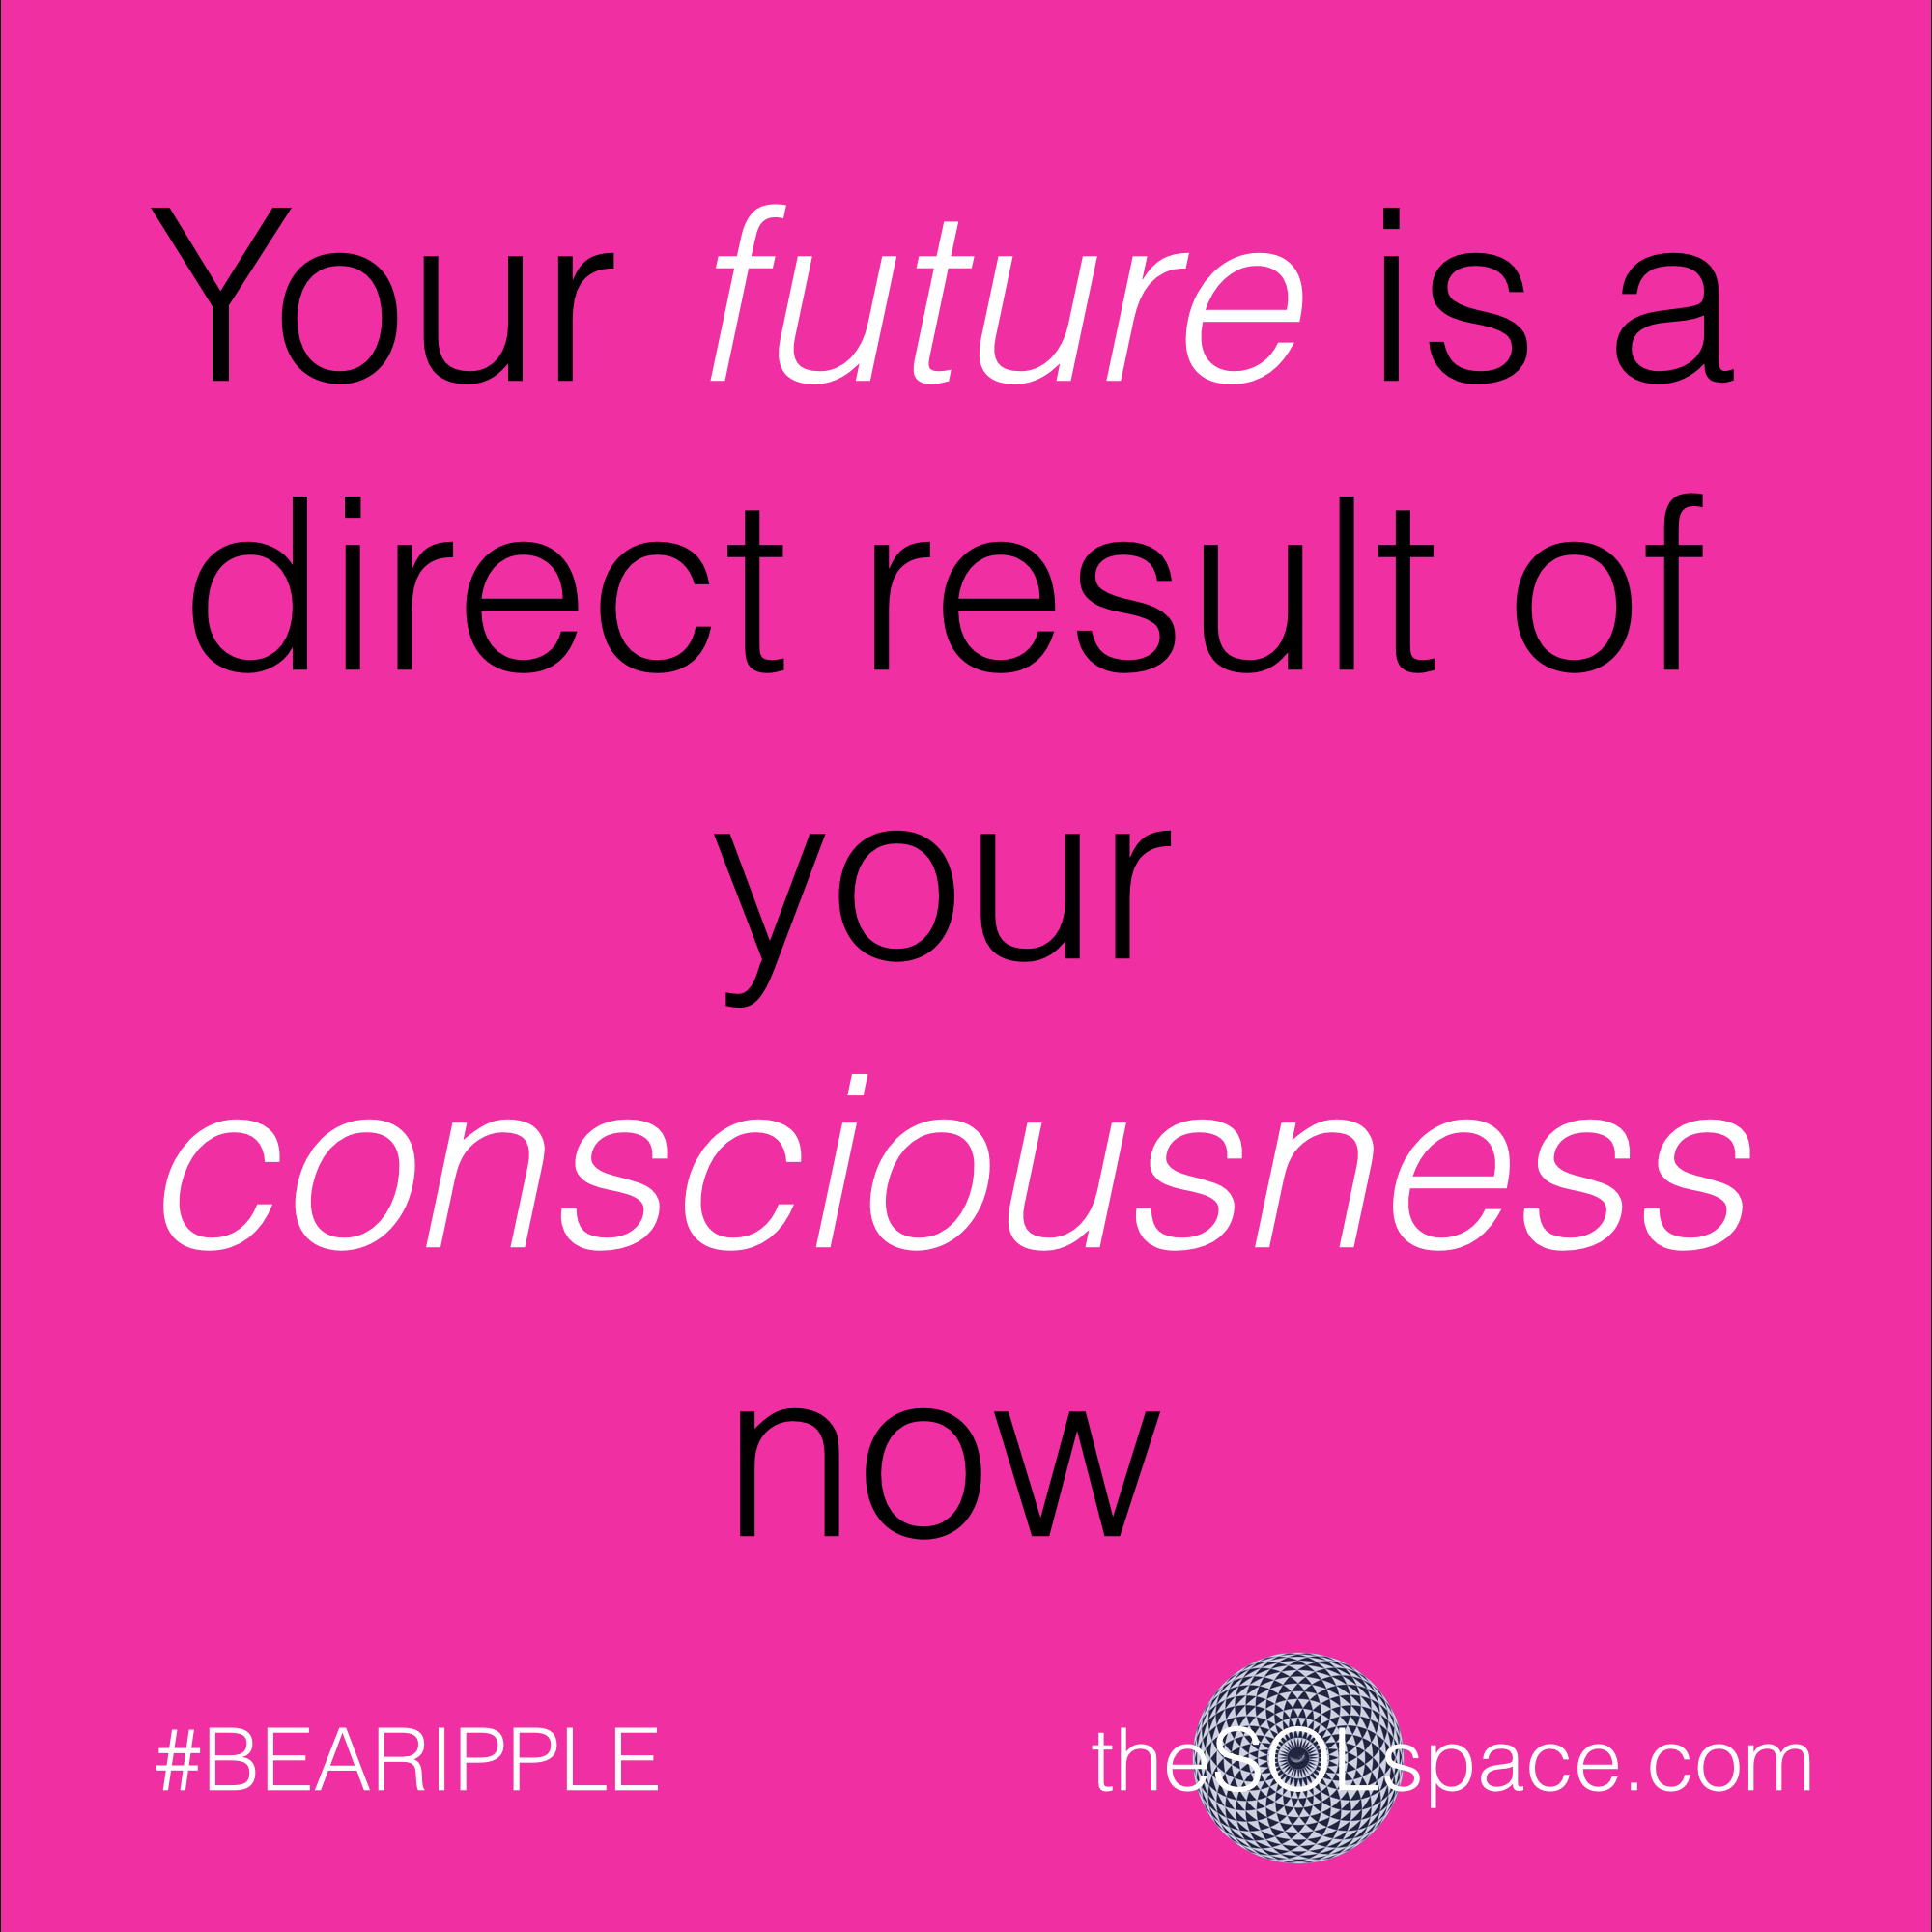 #BeARipple..Your future is a direct result of your consciousness now @theSOLspace